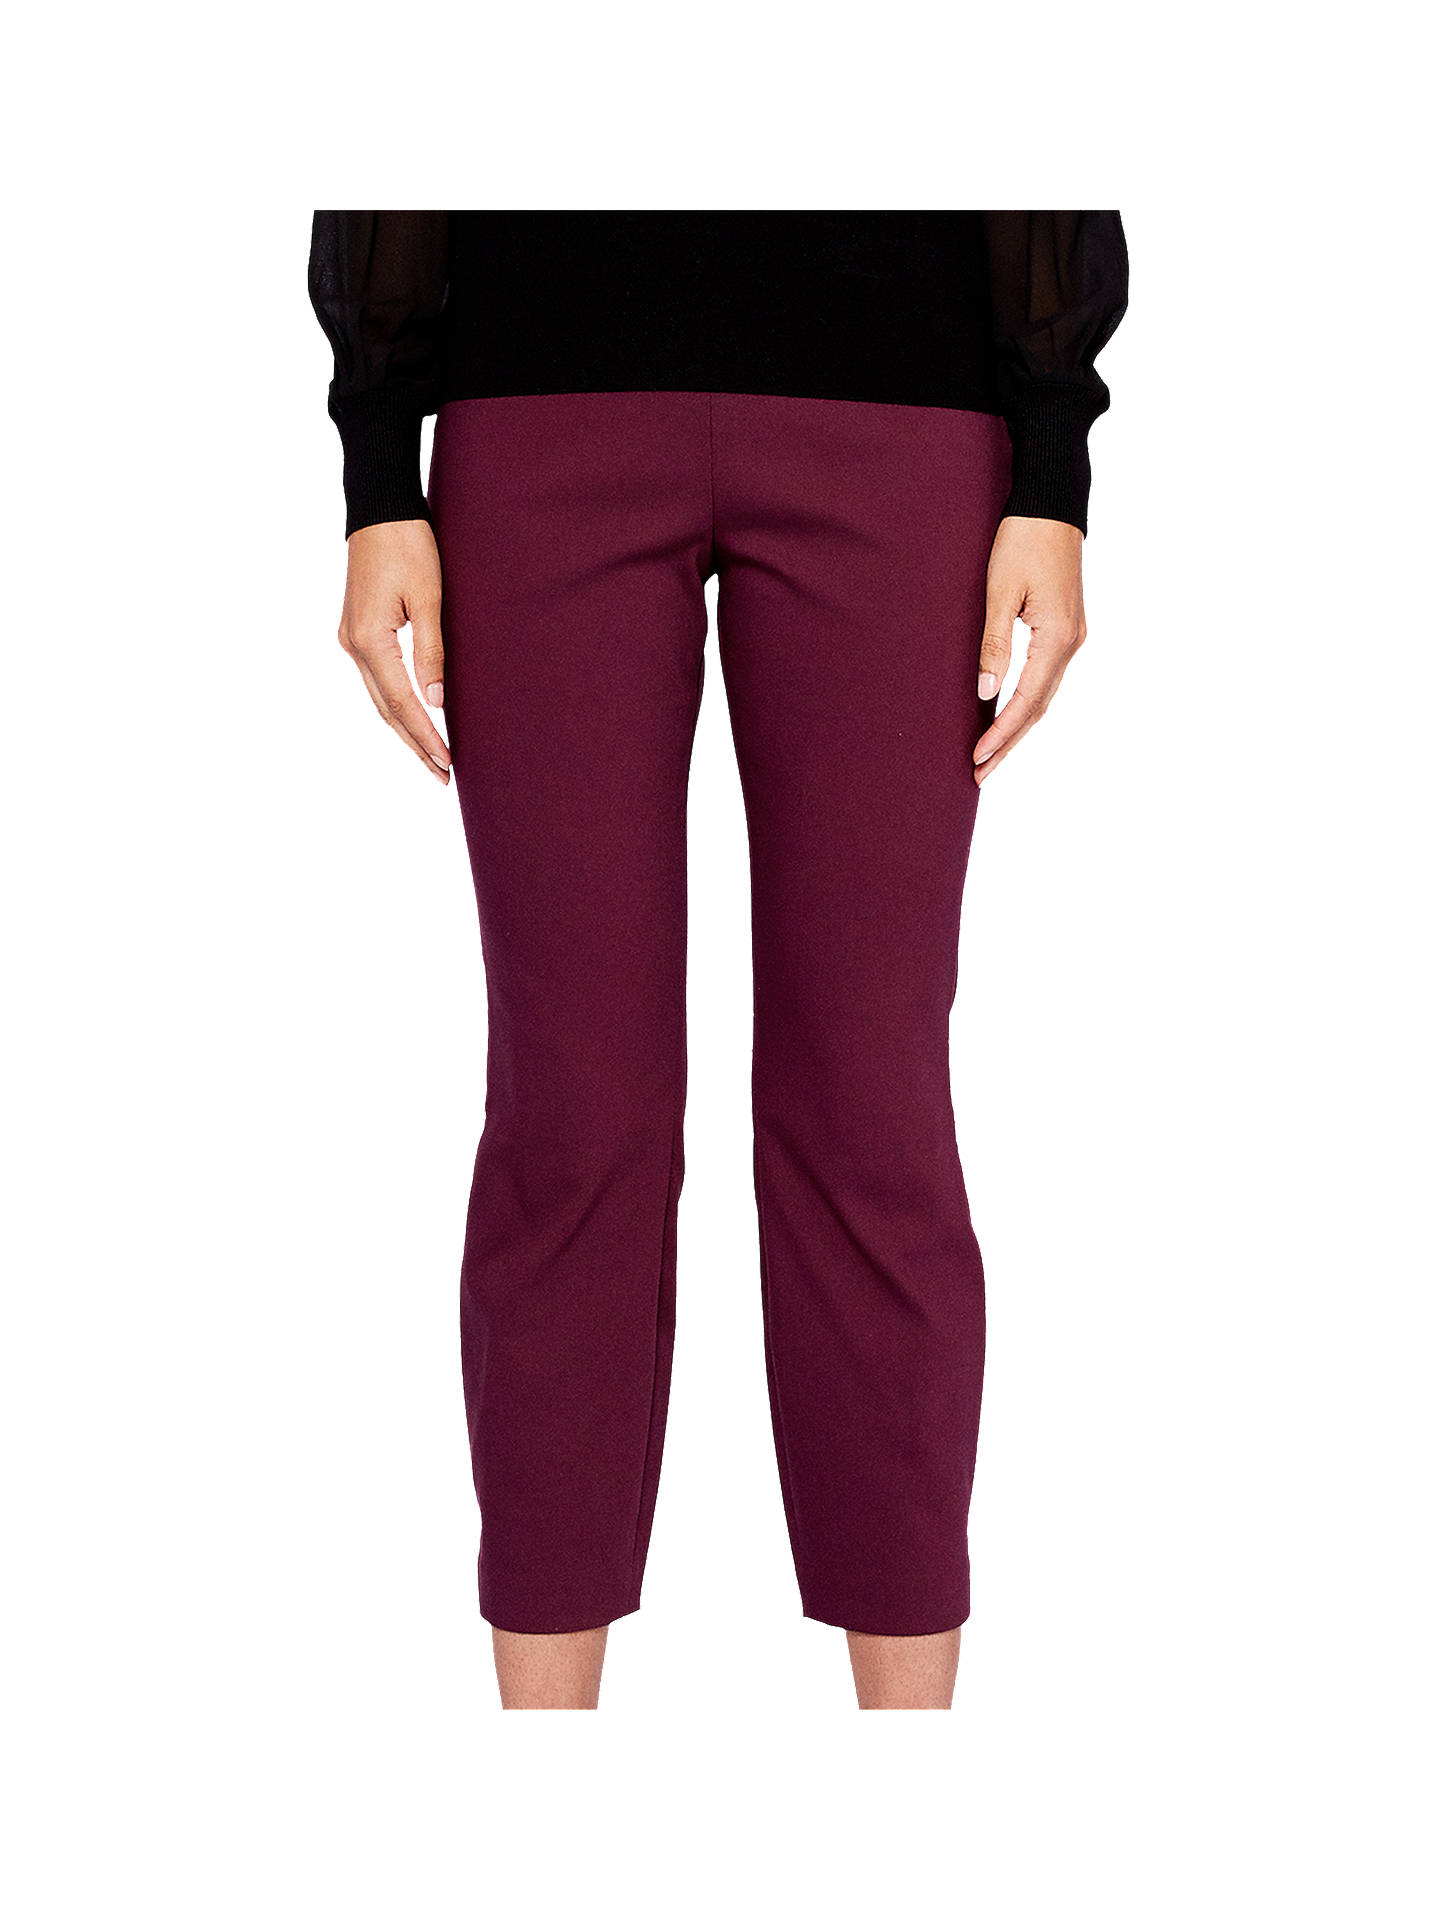 BuyTed Baker Baylea Crop Trousers, Maroon, 0 Online at johnlewis.com